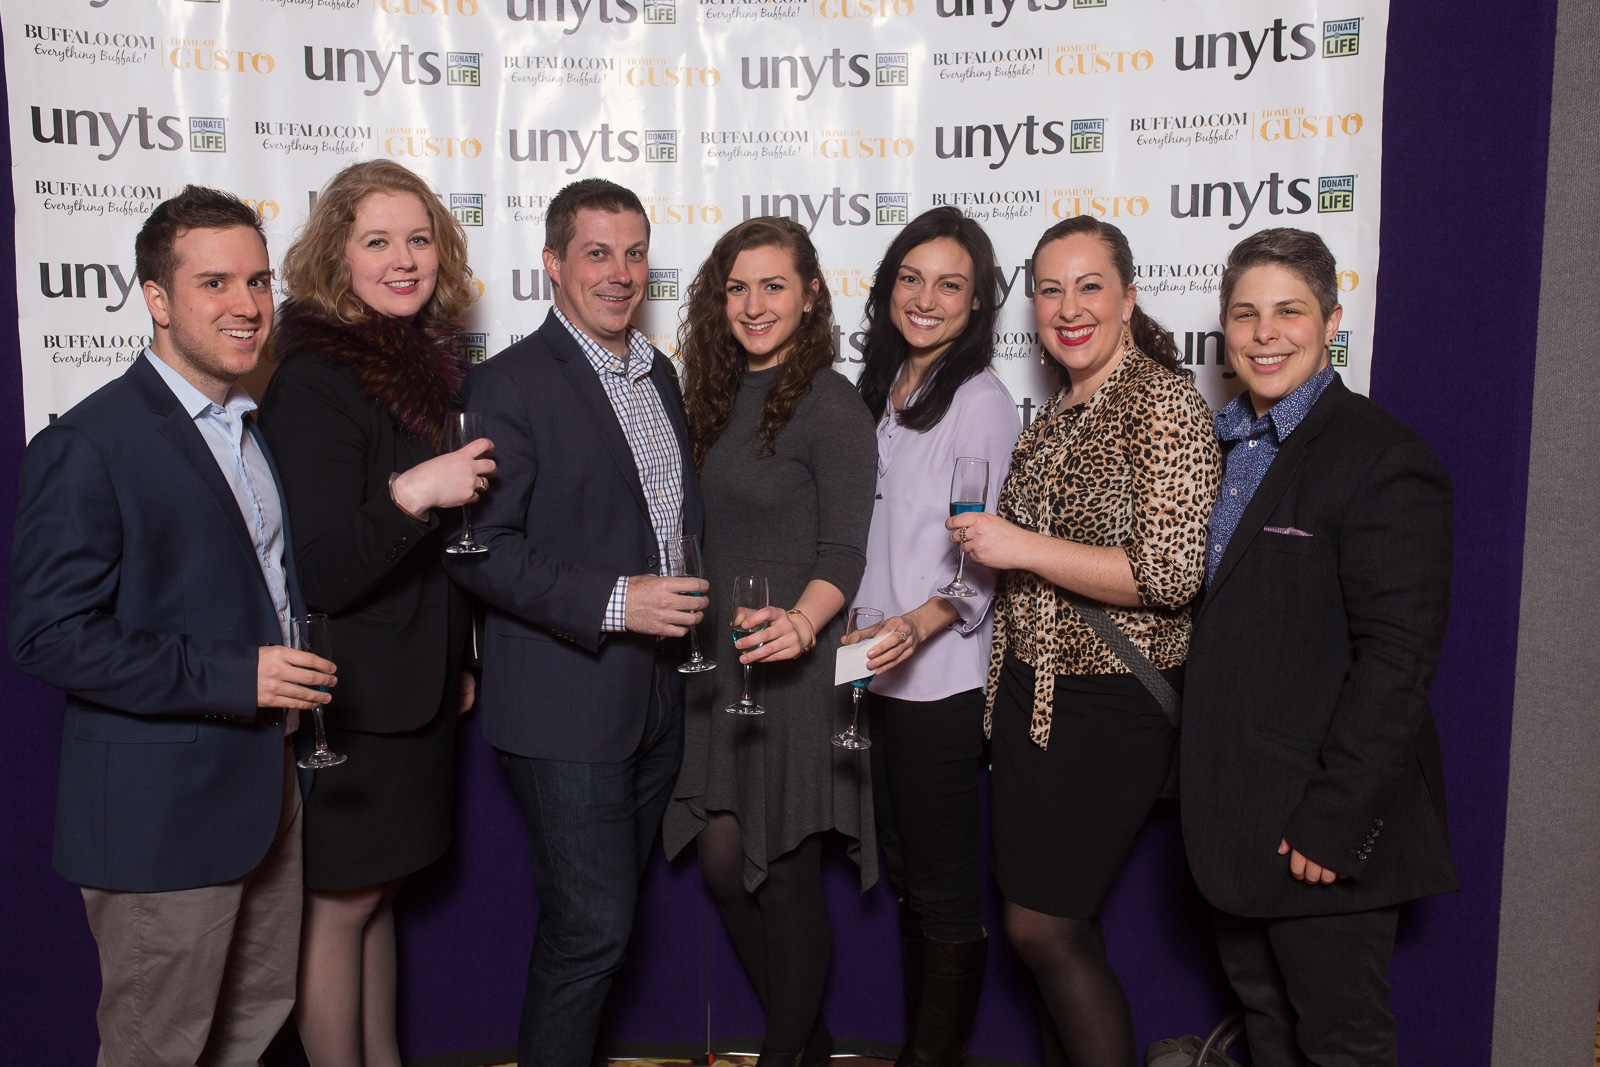 From virtual reality to fortune-telling to joining the circus and getting a tattoo, Upstate New York Transplant Services (UNYTS) Bucket List Bash helped attendees cross items off their bucket lists on Friday, April 7, 2017 in Statler City.